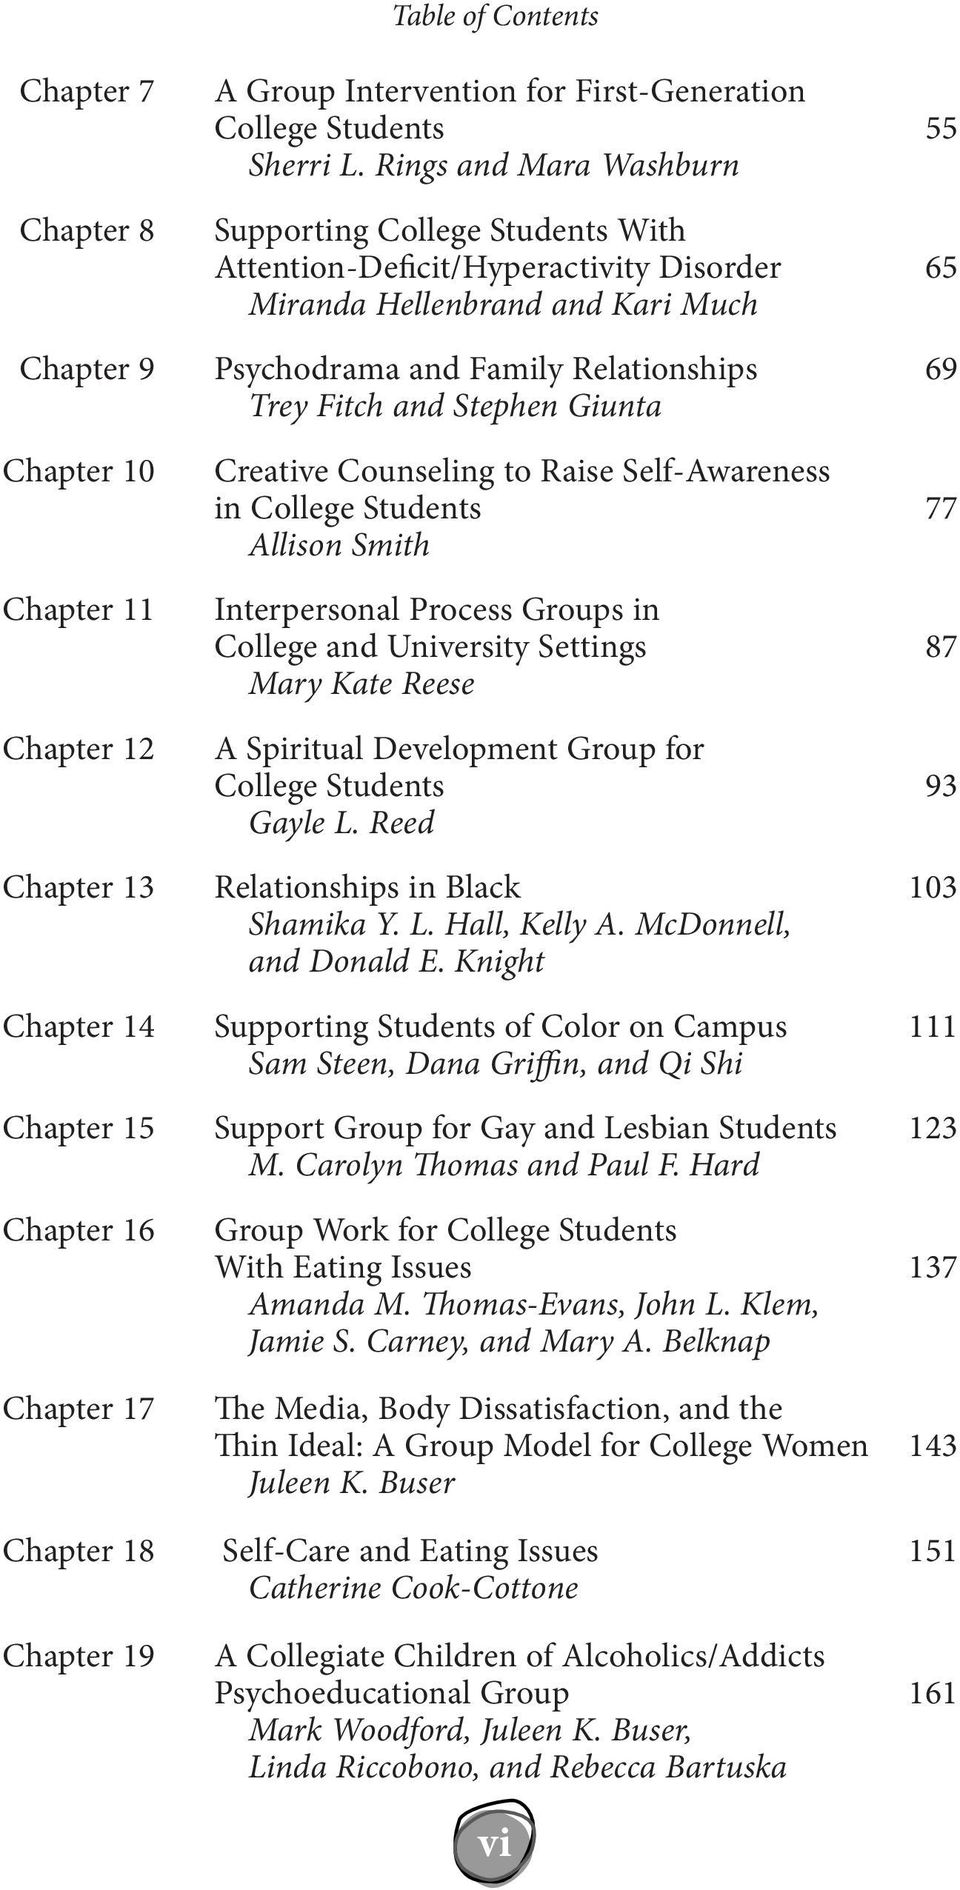 Stephen Giunta Chapter 10 Chapter 11 Chapter 12 Creative Counseling to Raise Self-Awareness in College Students 77 Allison Smith Interpersonal Process Groups in College and University Settings 87